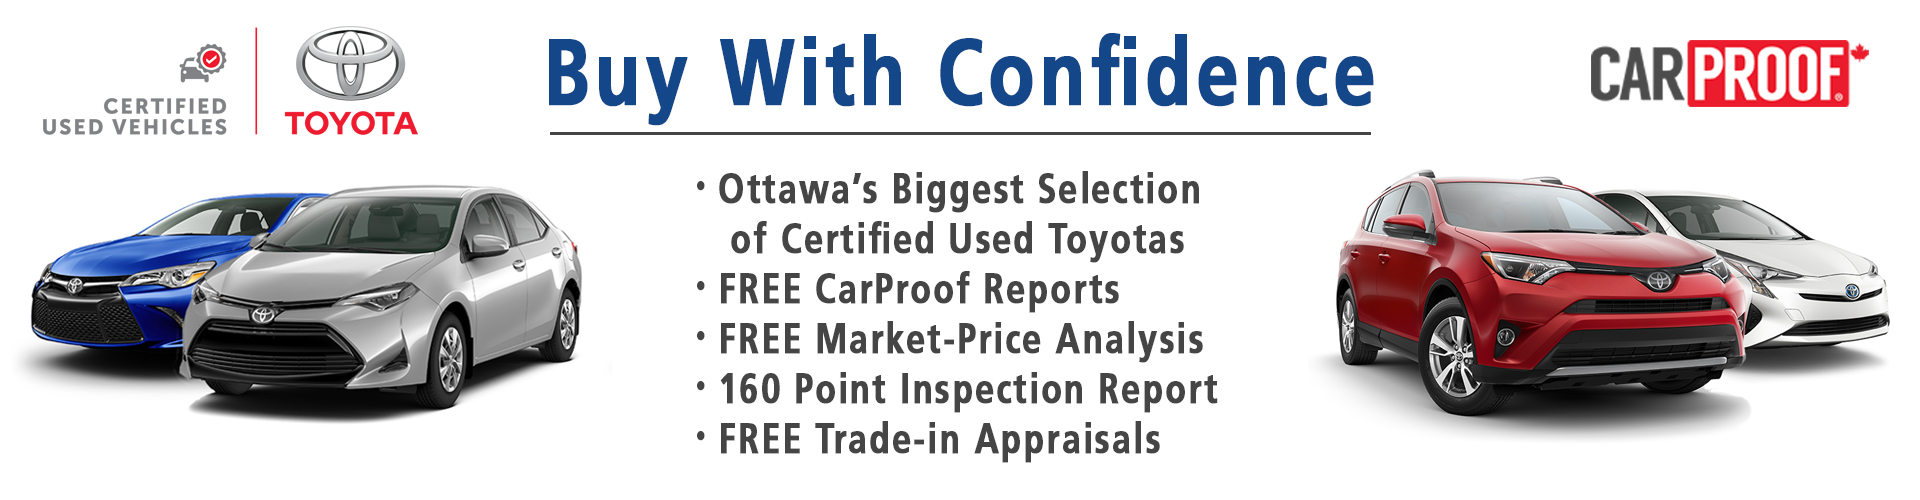 Used cars suvs trucks for sale in ottawa